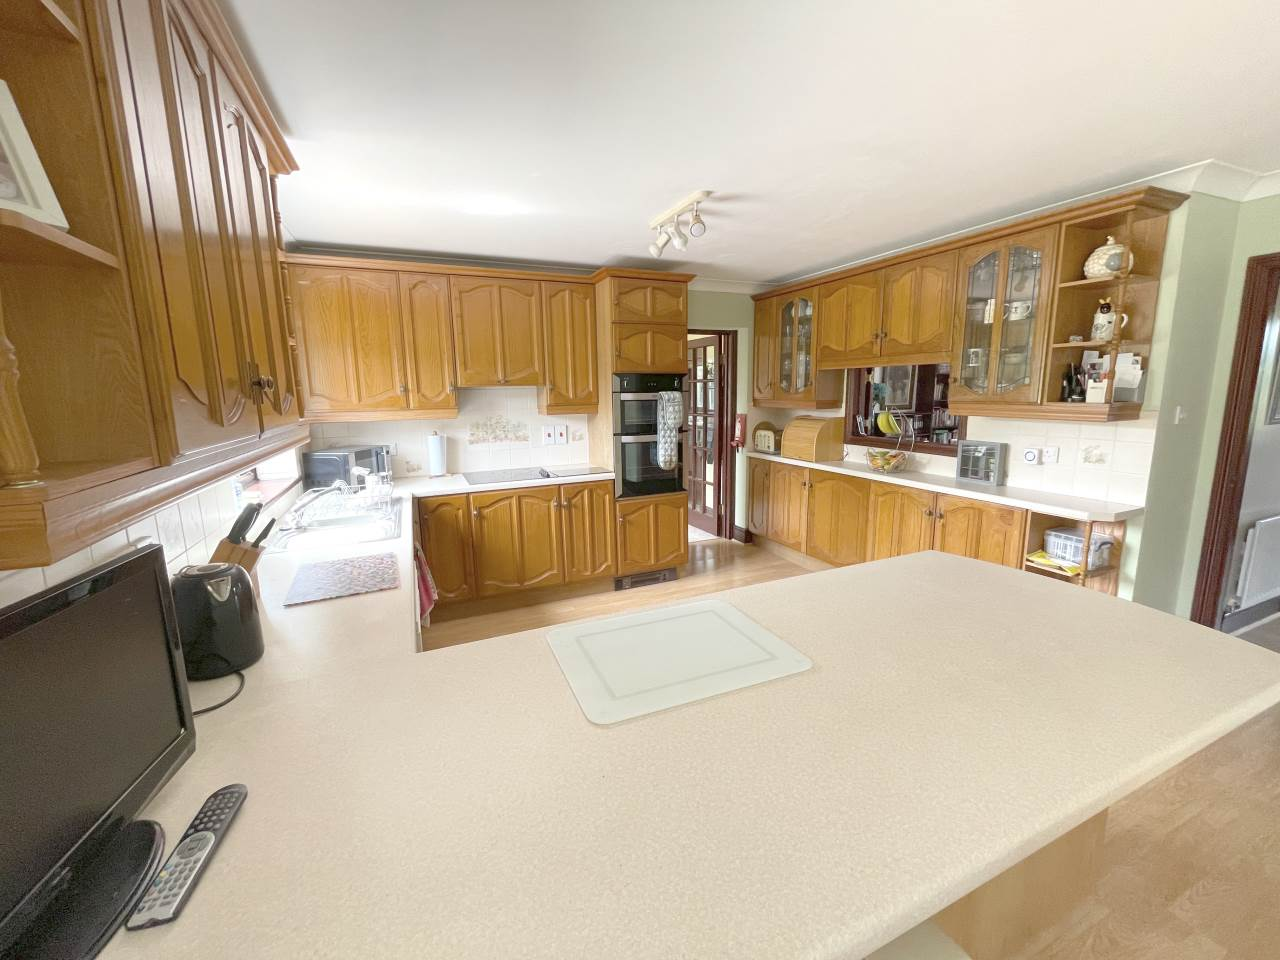 4 bed house for sale in Swn-y-Plant, 1 Troedybryn  - Property Image 6